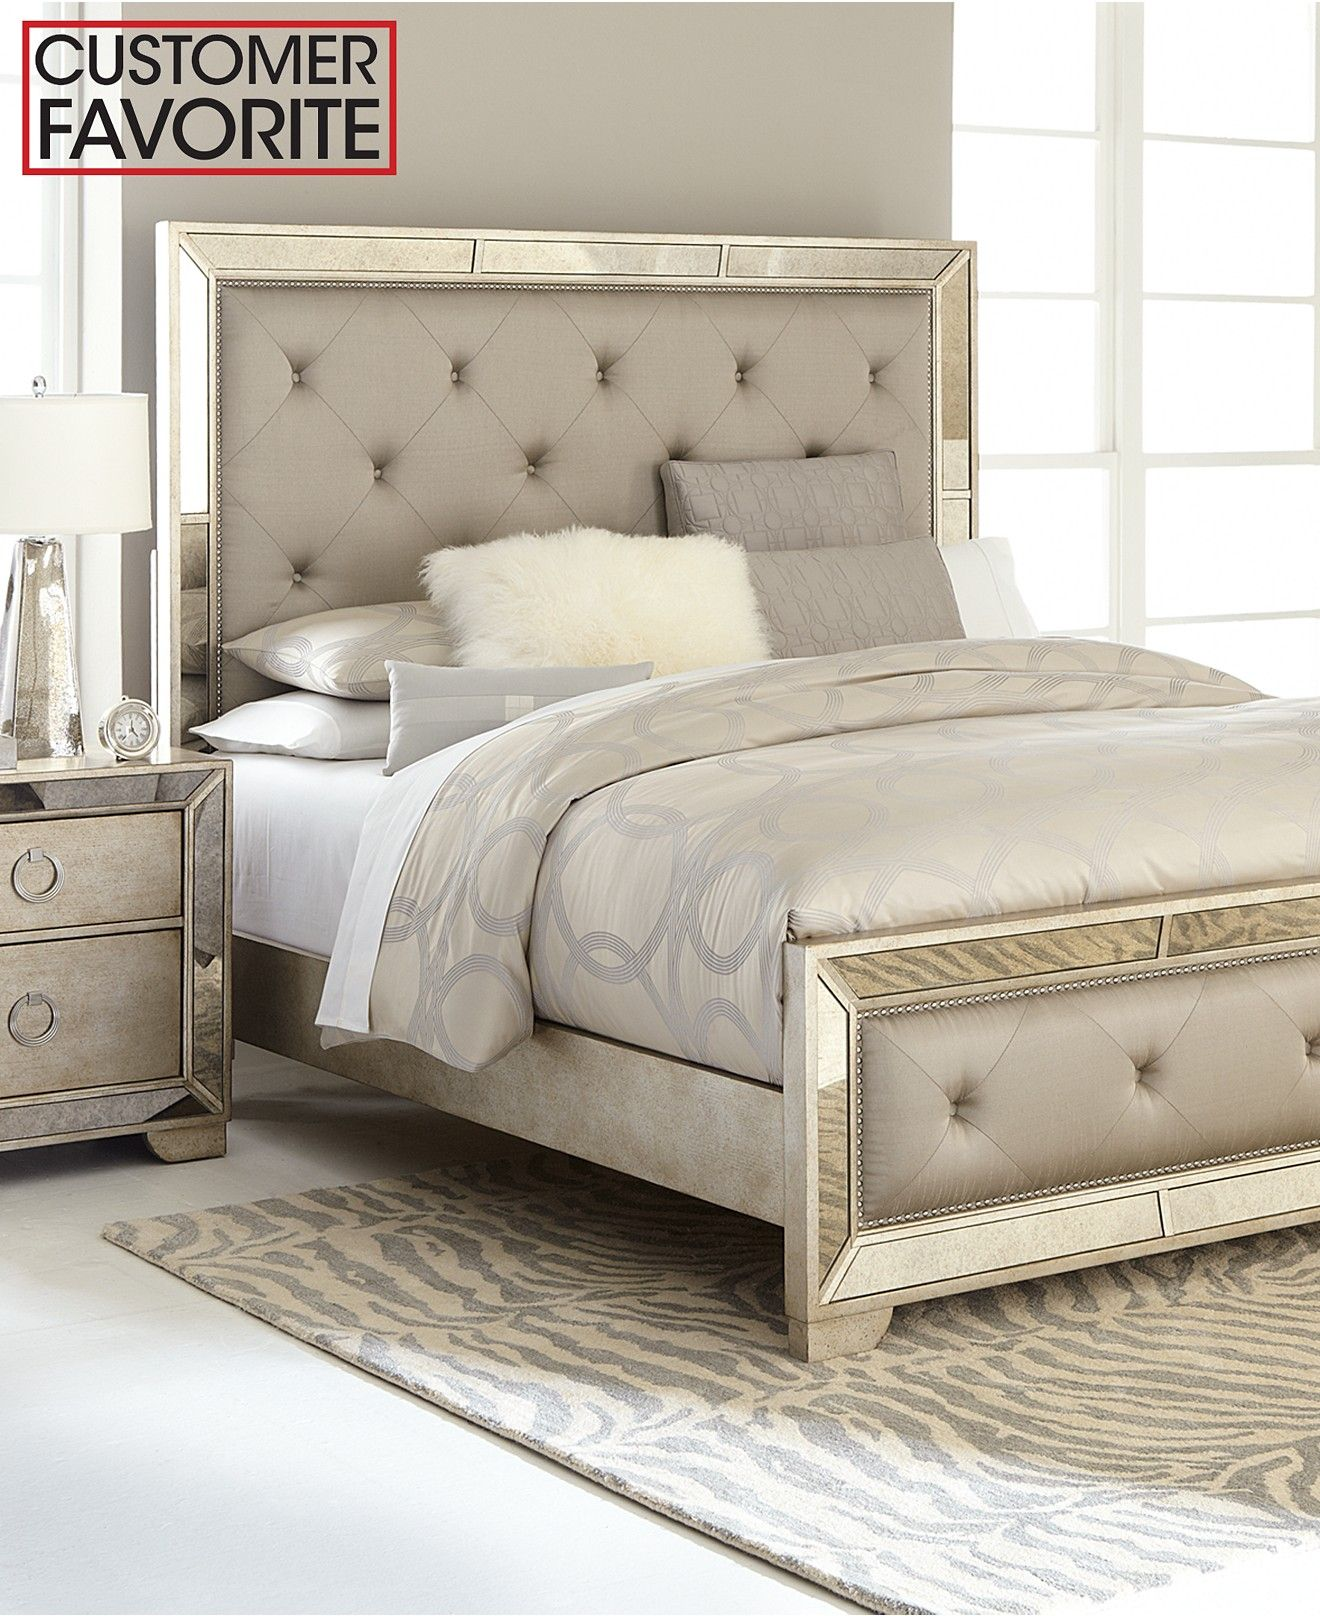 Ailey Queen 3 Pc Bedroom Set Bed Nightstand Dresser